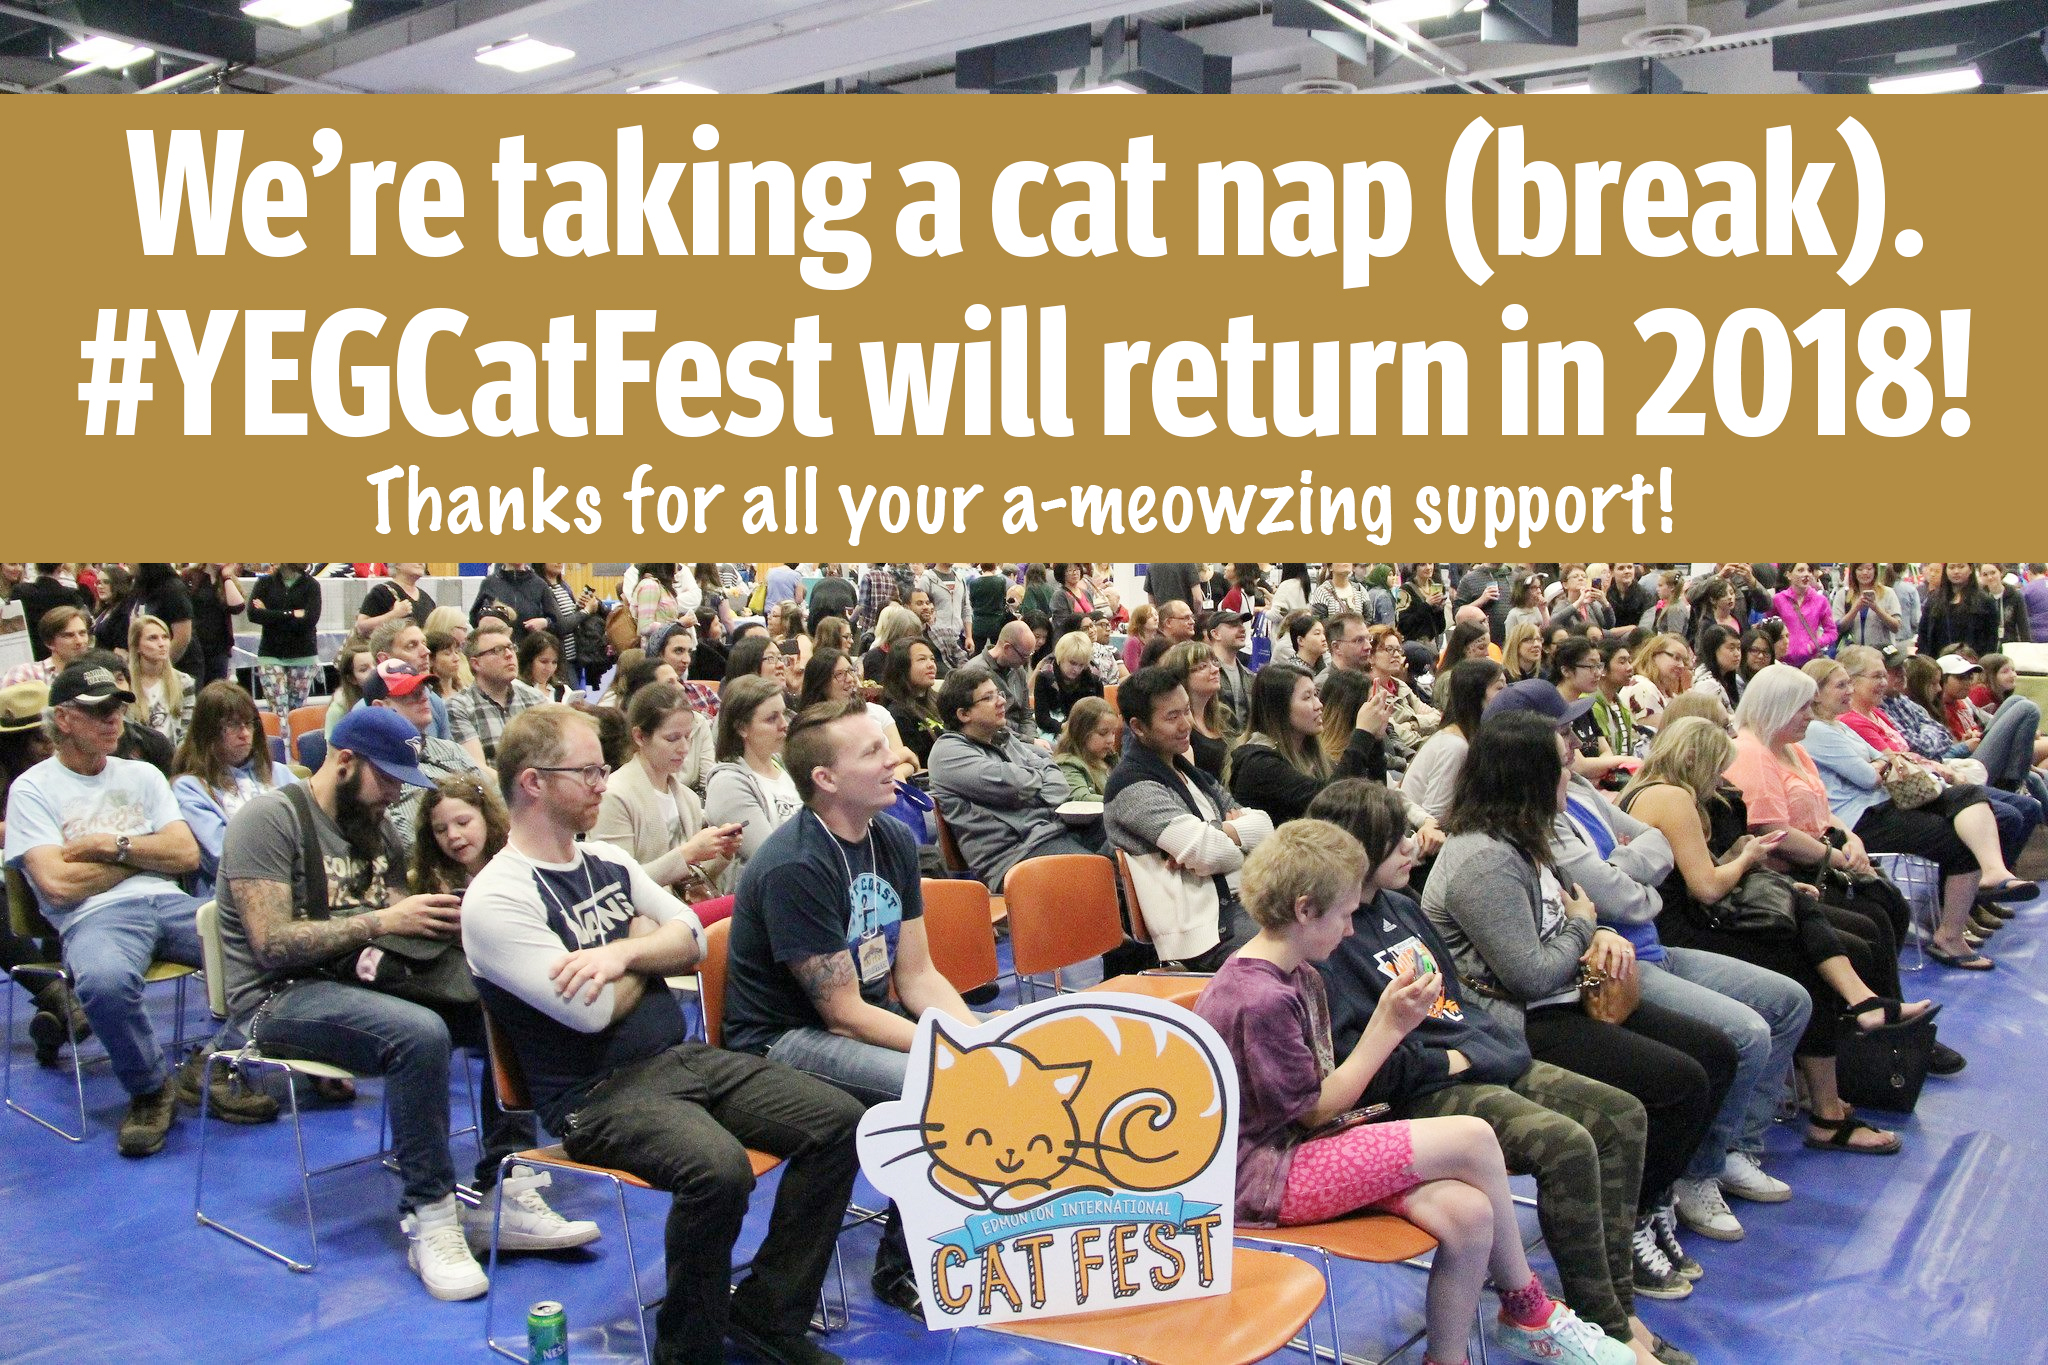 Cat Festival Break